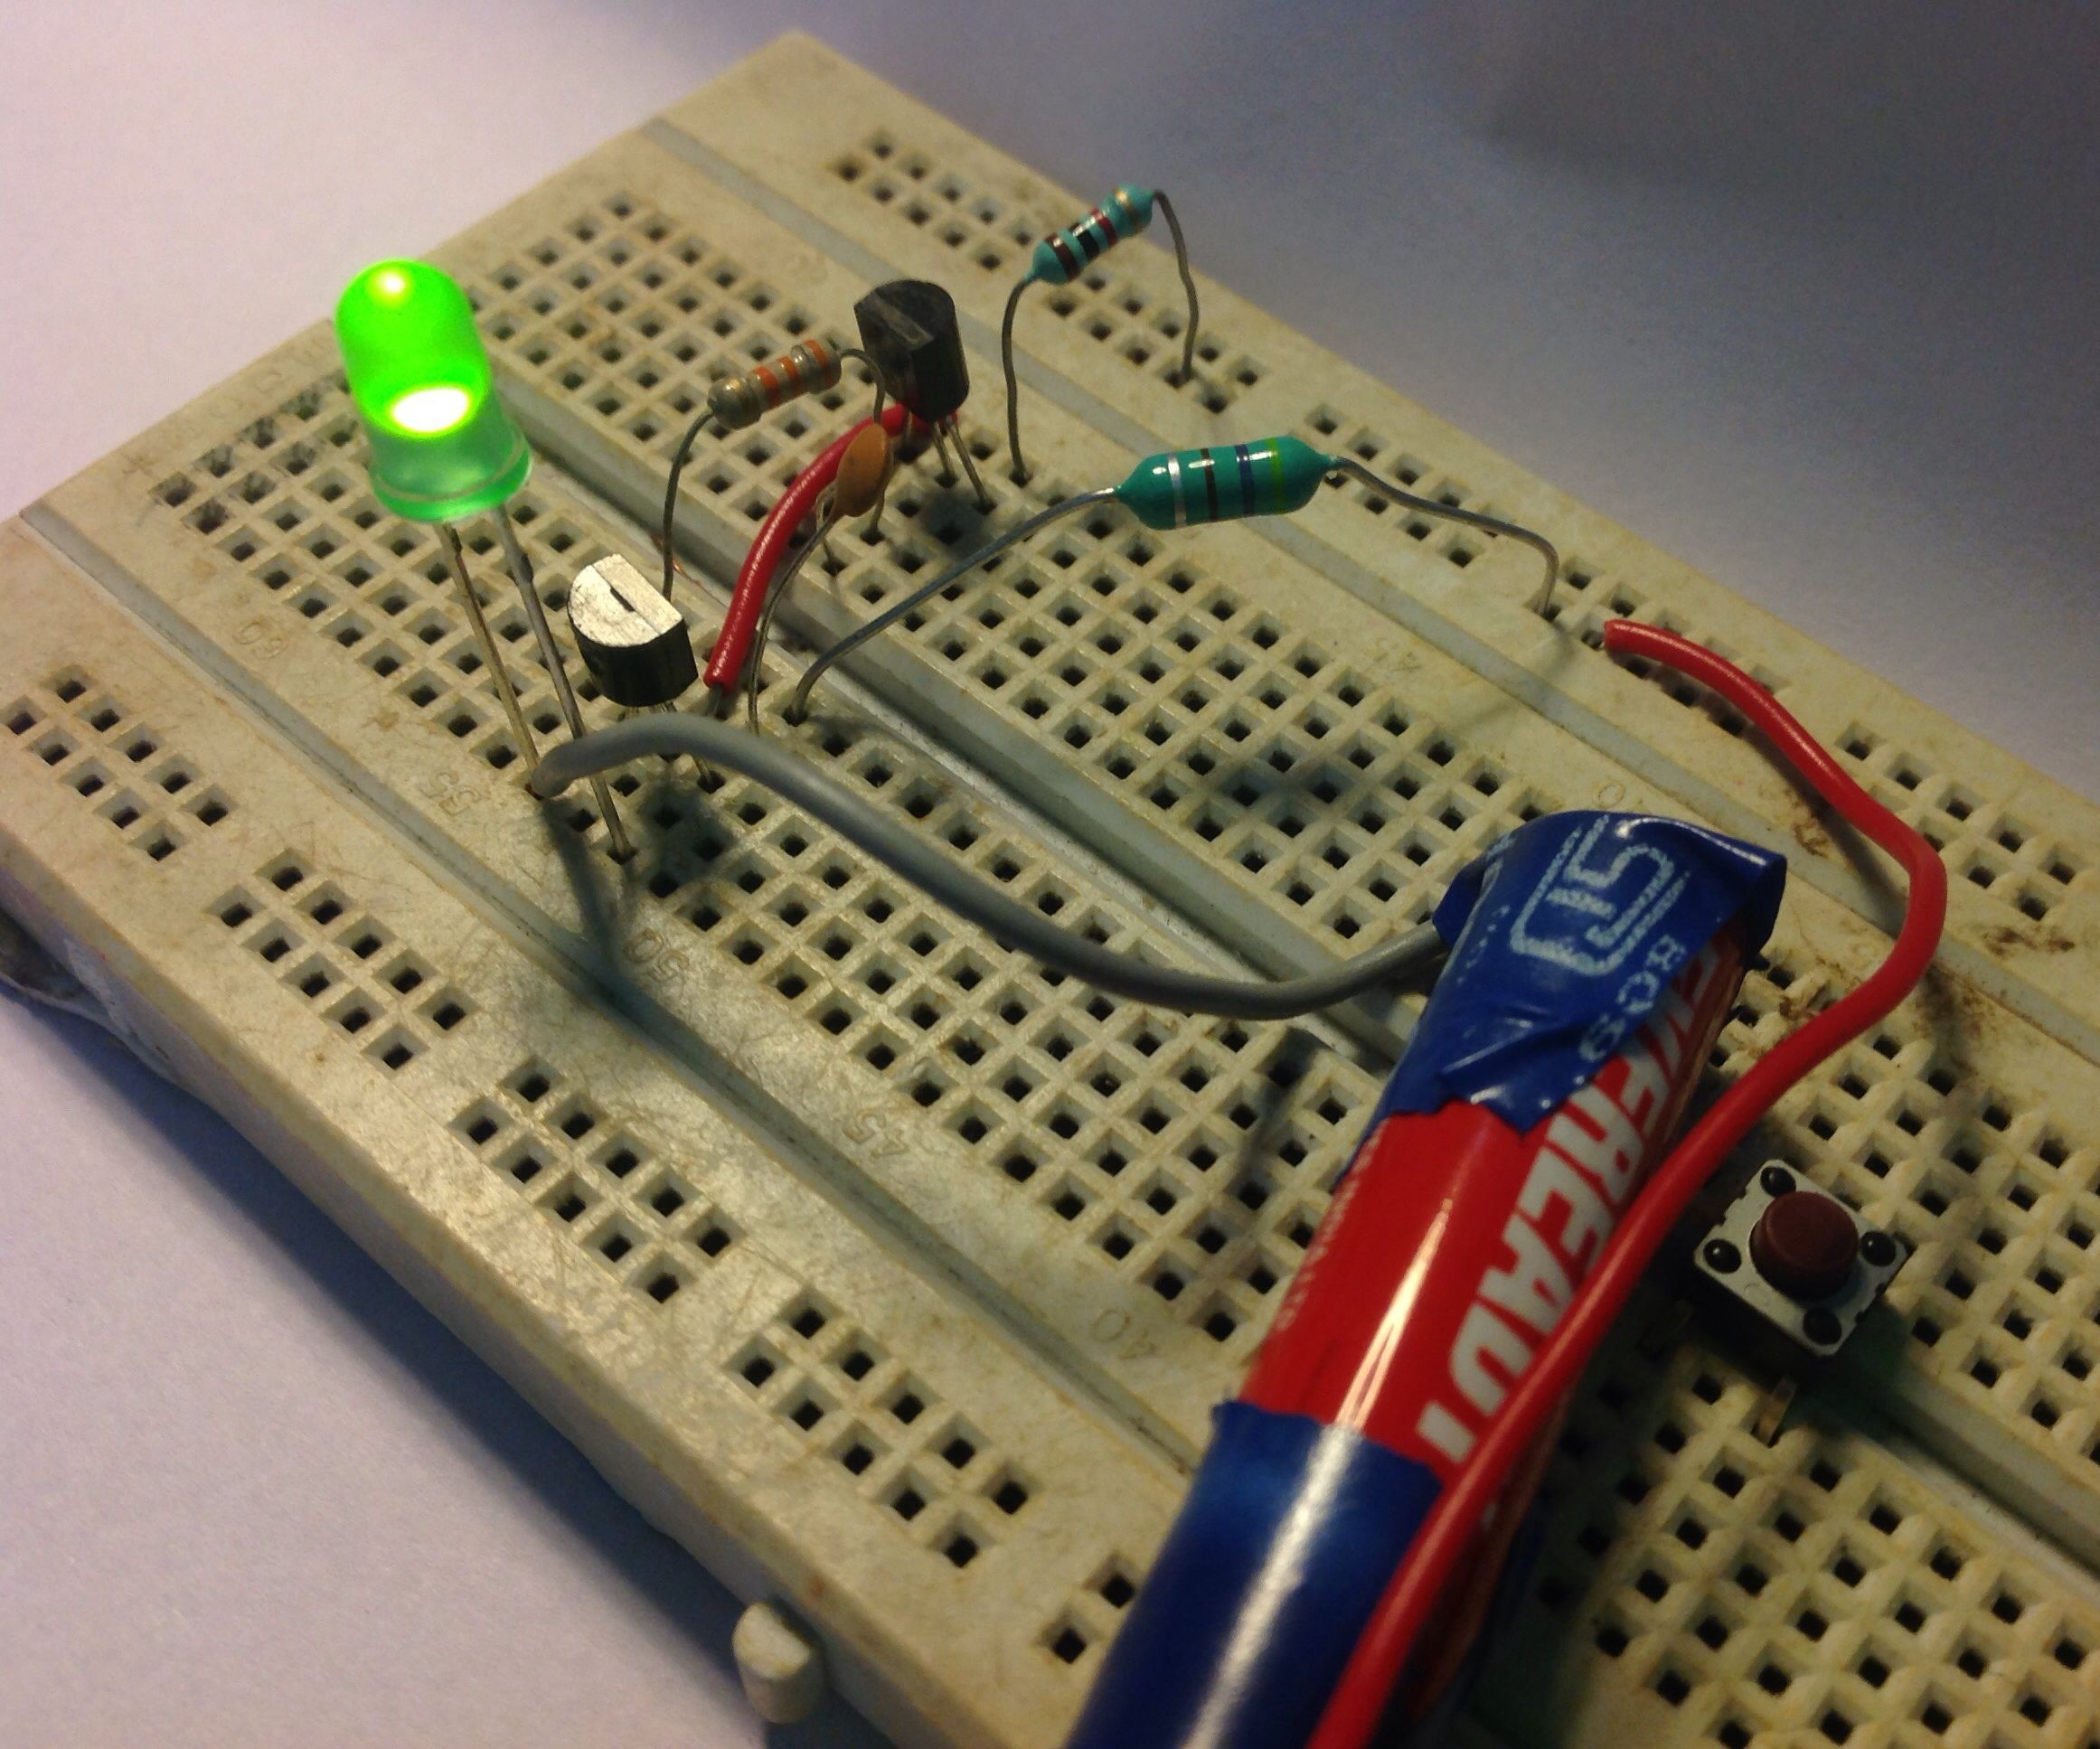 Super Simple Inductor Joule Thief!